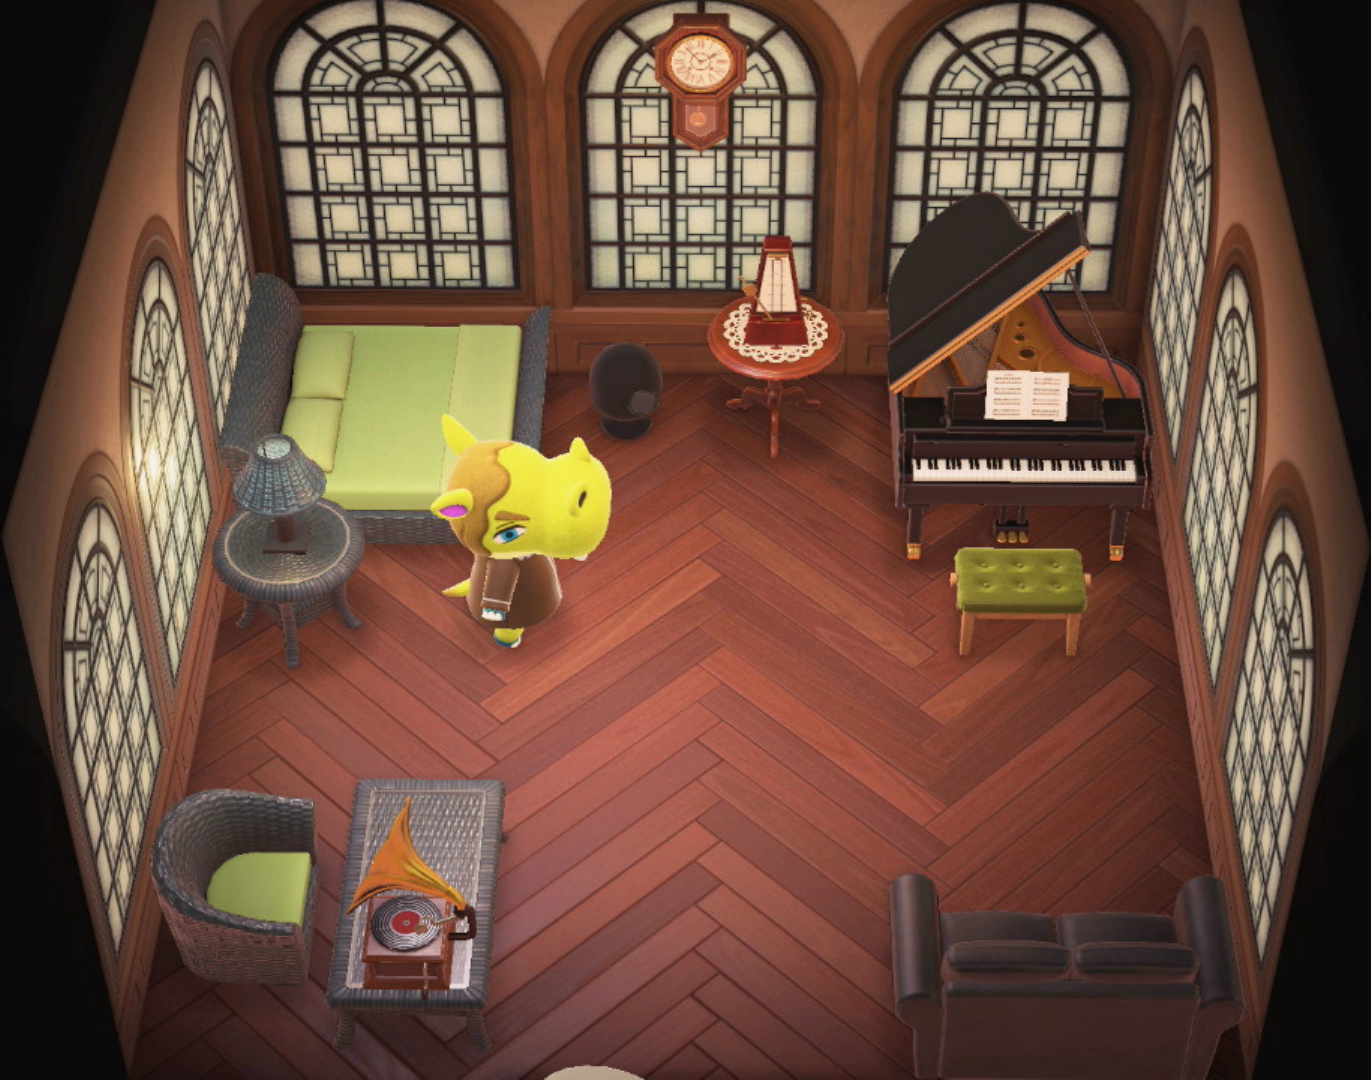 Interior of Hippeux's house in Animal Crossing: New Horizons